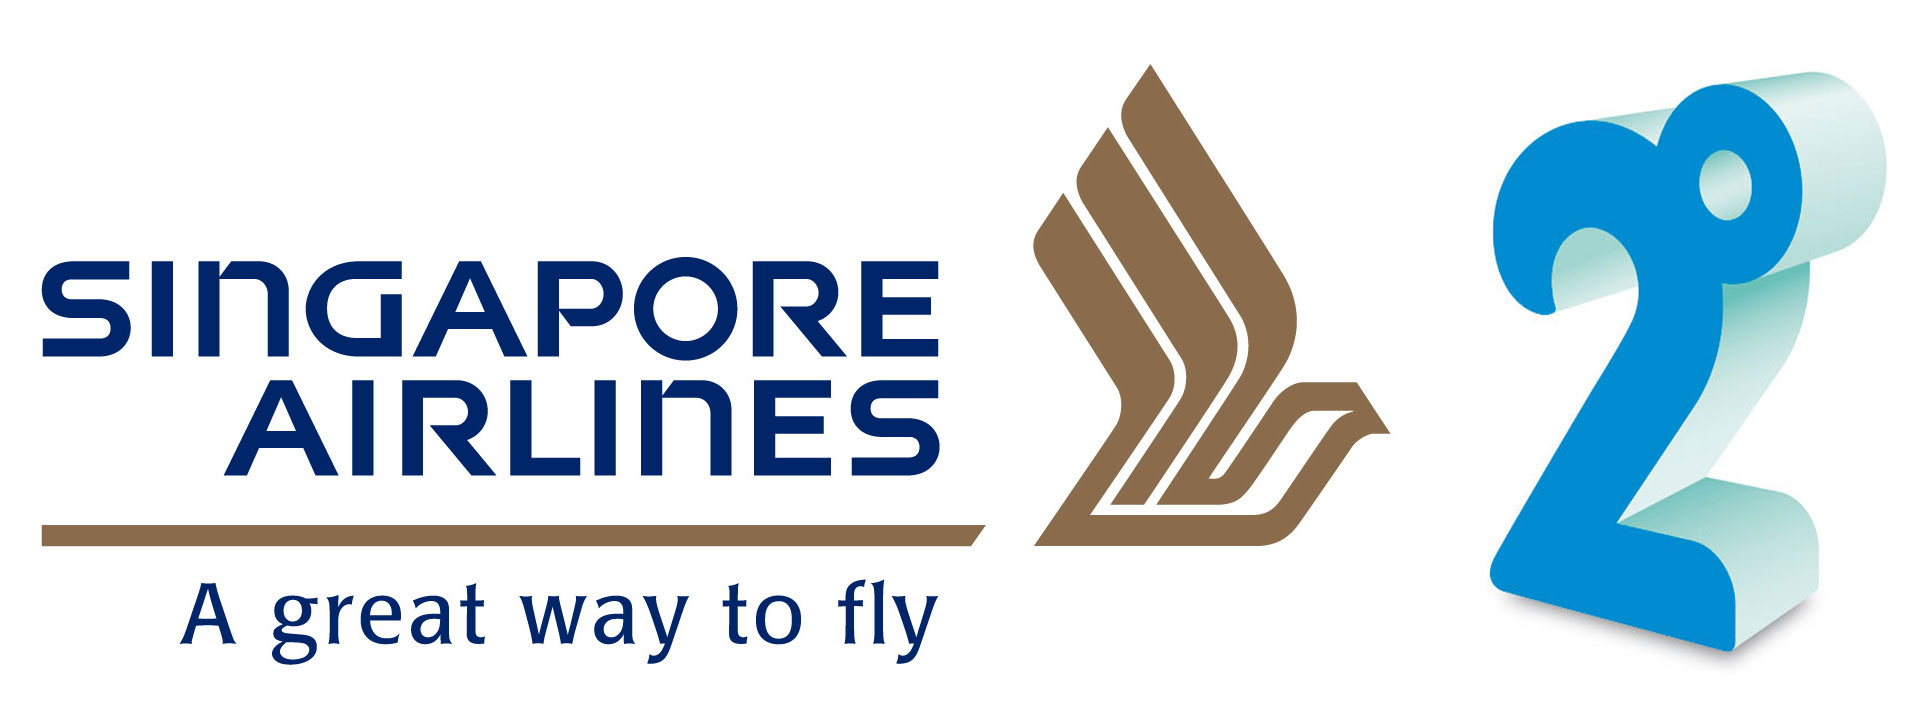 Singapore Airlines, 2 Degrees sponsor Awards